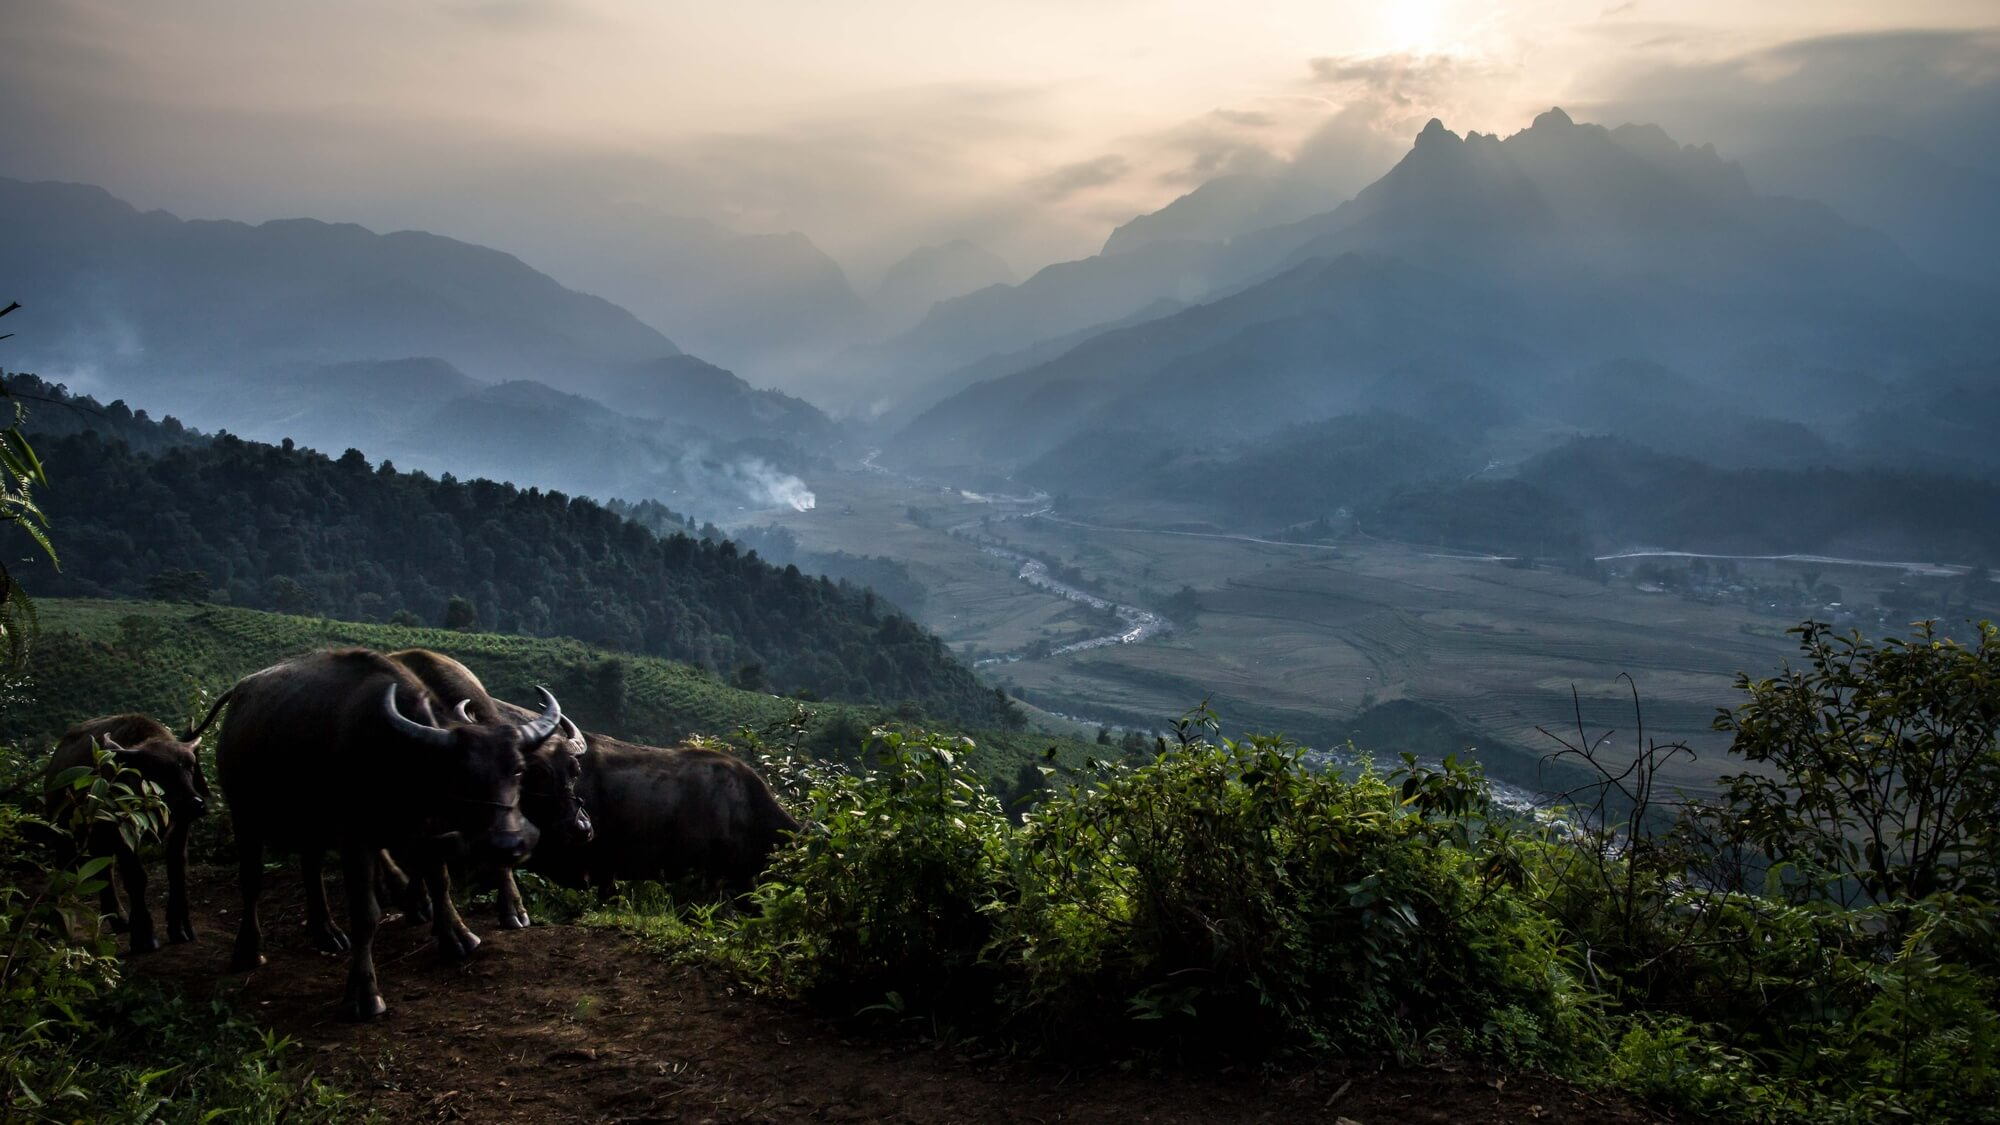 Vietnam Buffaloes with Mountainous Landscape